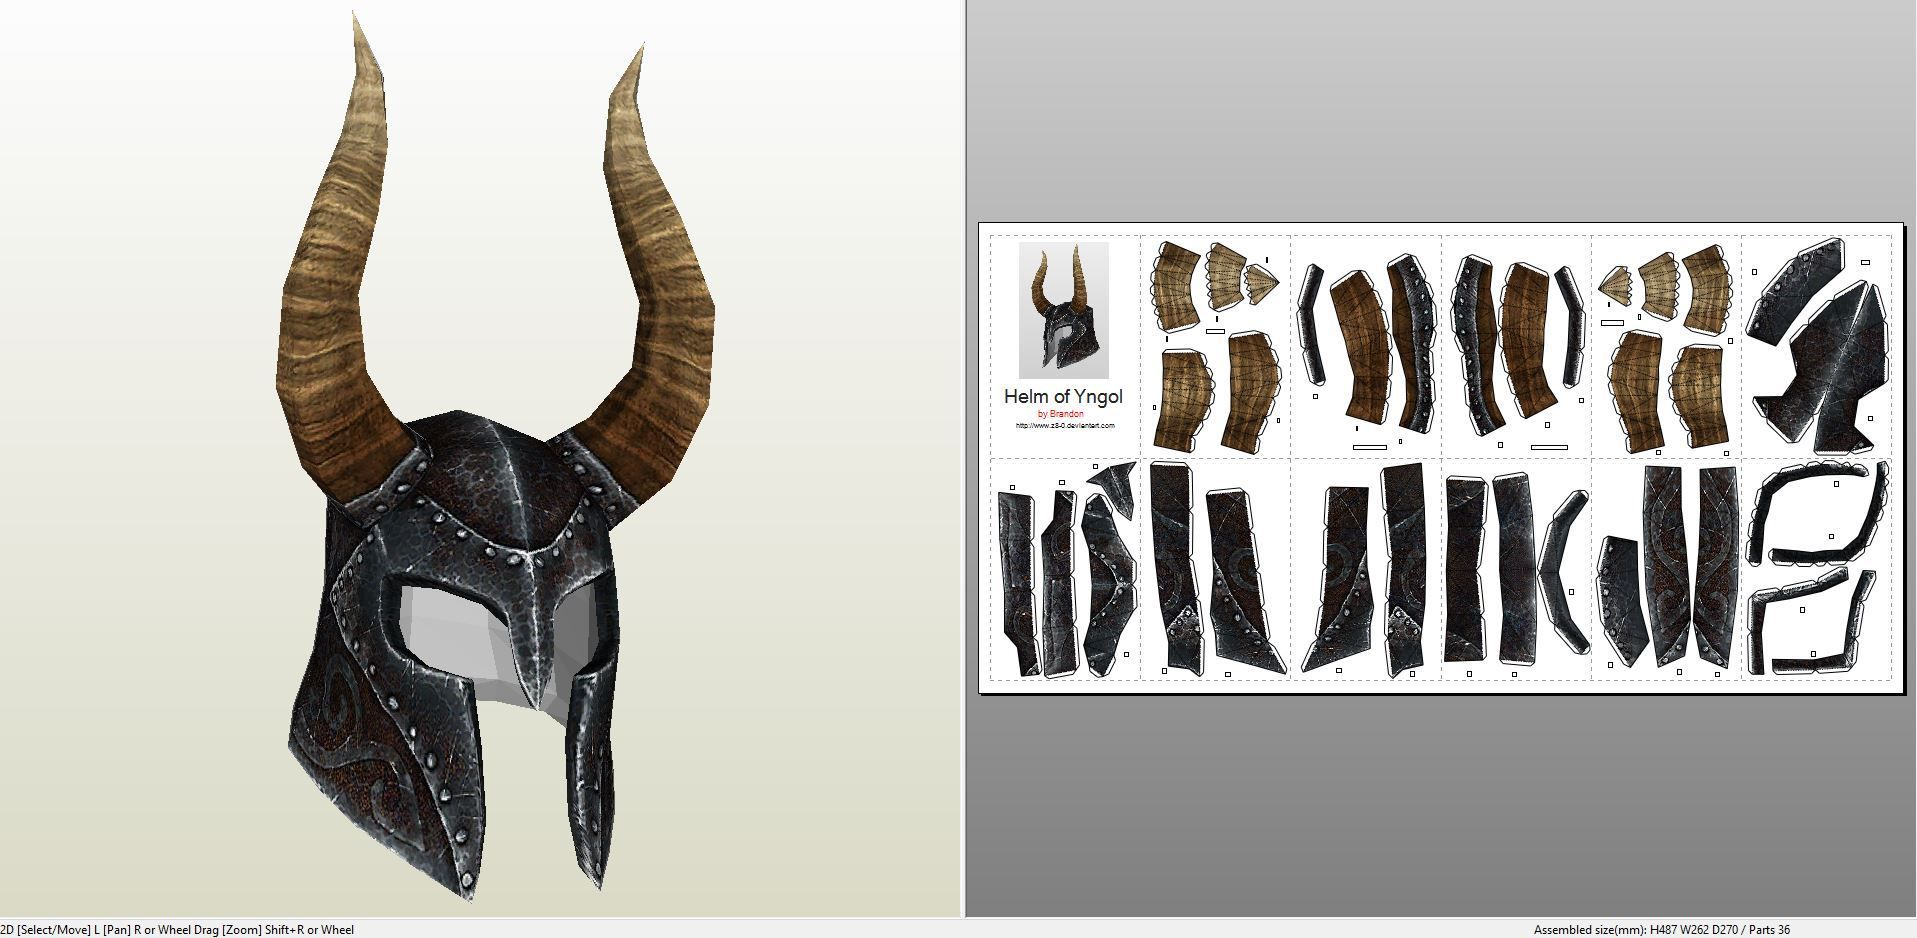 Papercraft pdo file template for skyrim helm of yngol papercraft pdo file template for skyrim helm of yngol pronofoot35fo Image collections